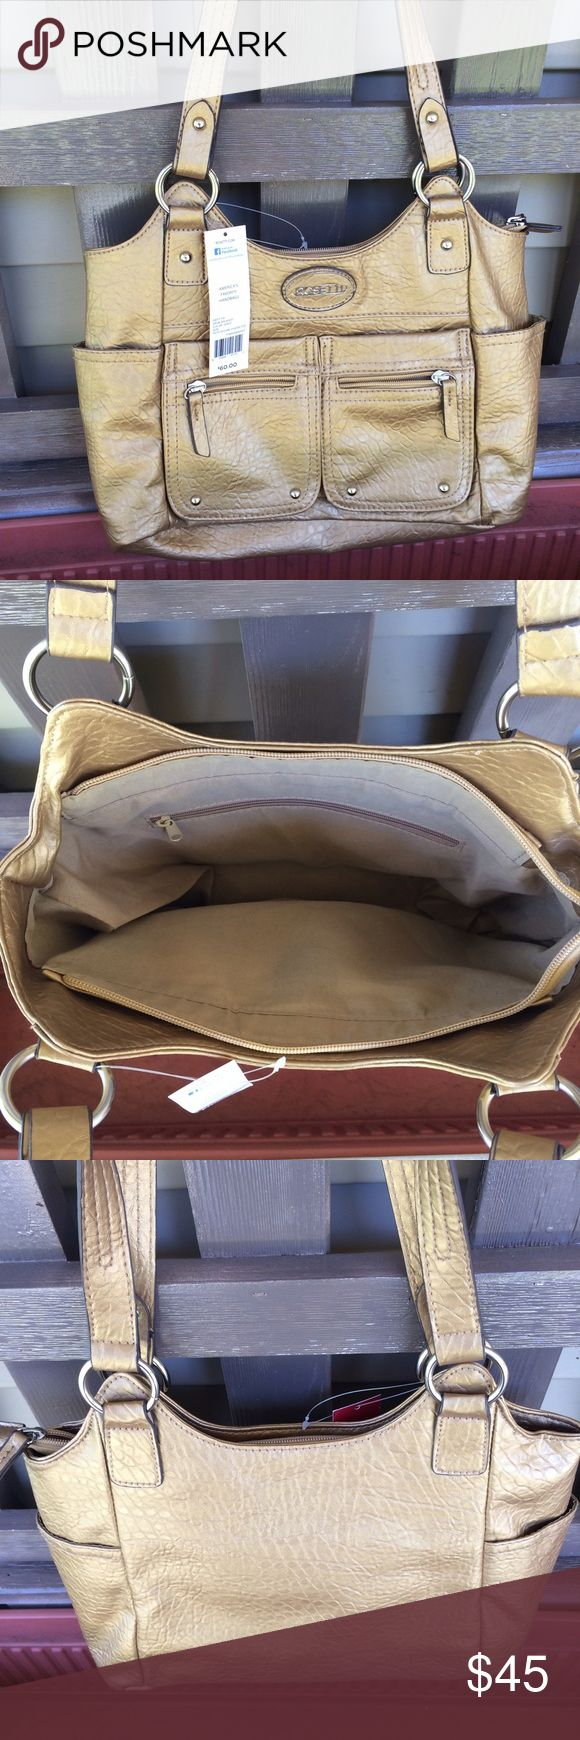 ❗️Last 1❗️Rosetti Gold Shoulder Bag Handbag Purse Brand new with tags. Bundle and save5%! ❌Price is firm unless bundled❌ Rosetti Bags Shoulder Bags